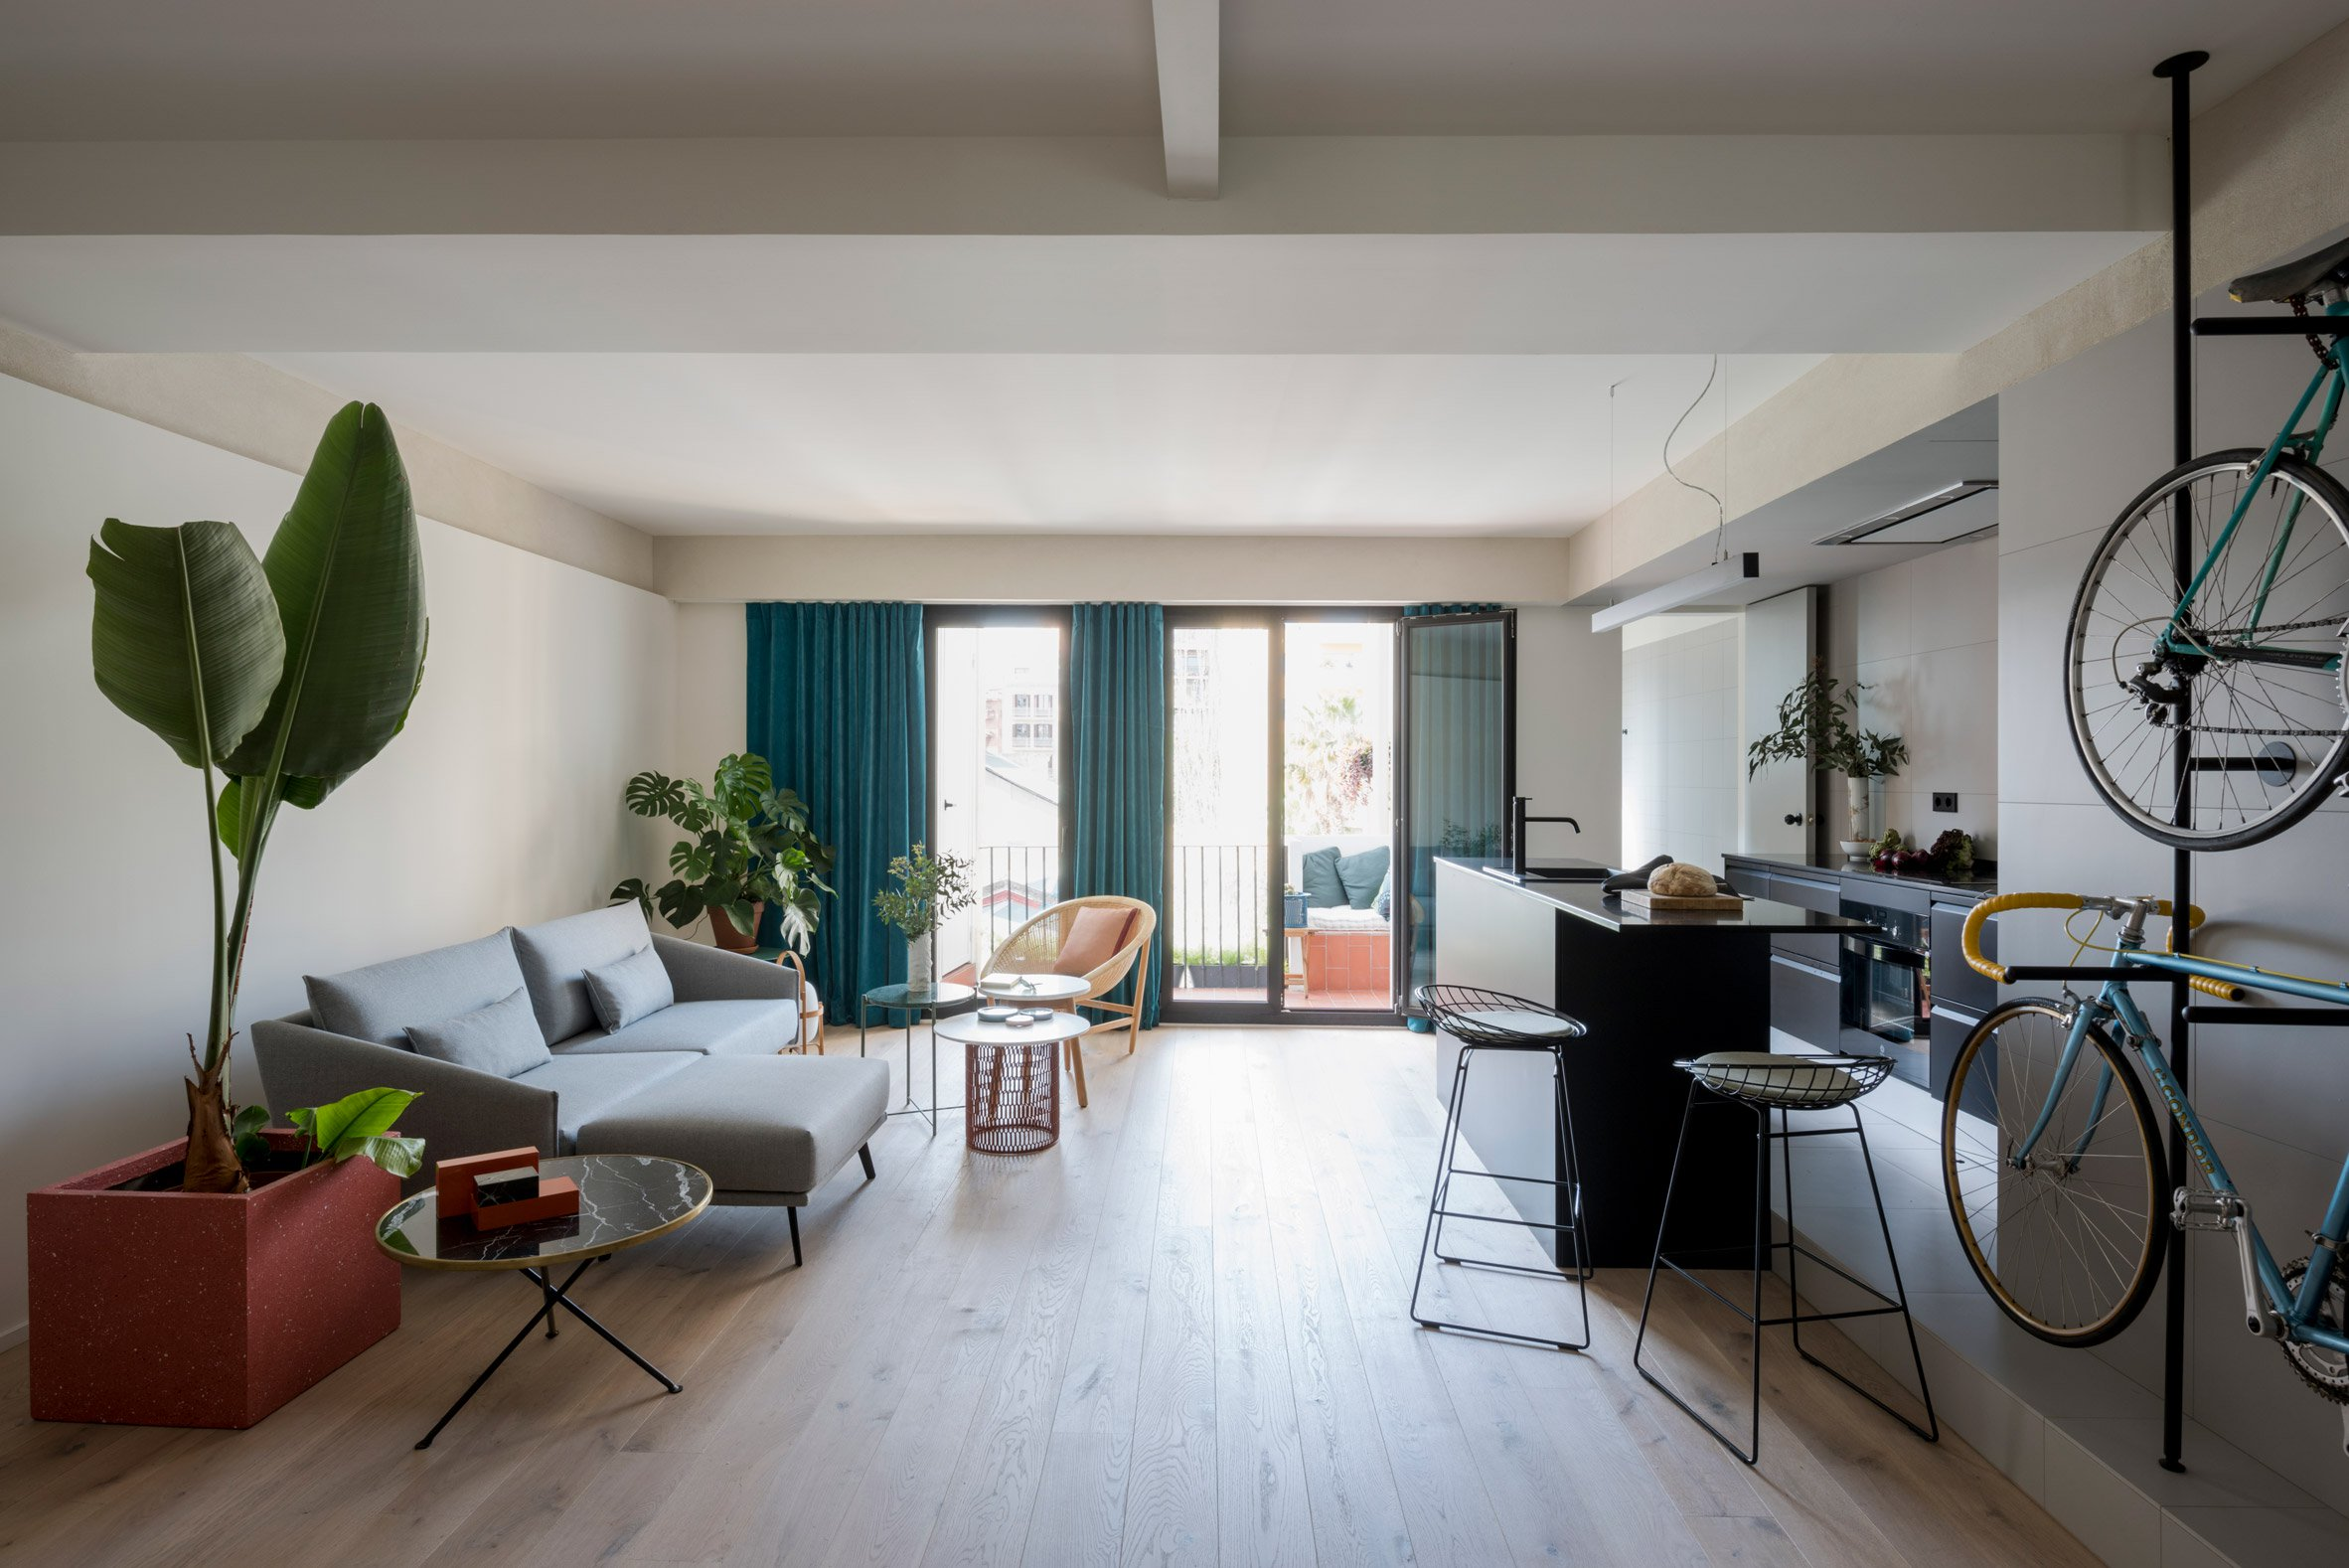 3. Home reno by Colombo and Serboli in Barcelona - Apartment renovation in Barcelona features bespoke bicycles storage